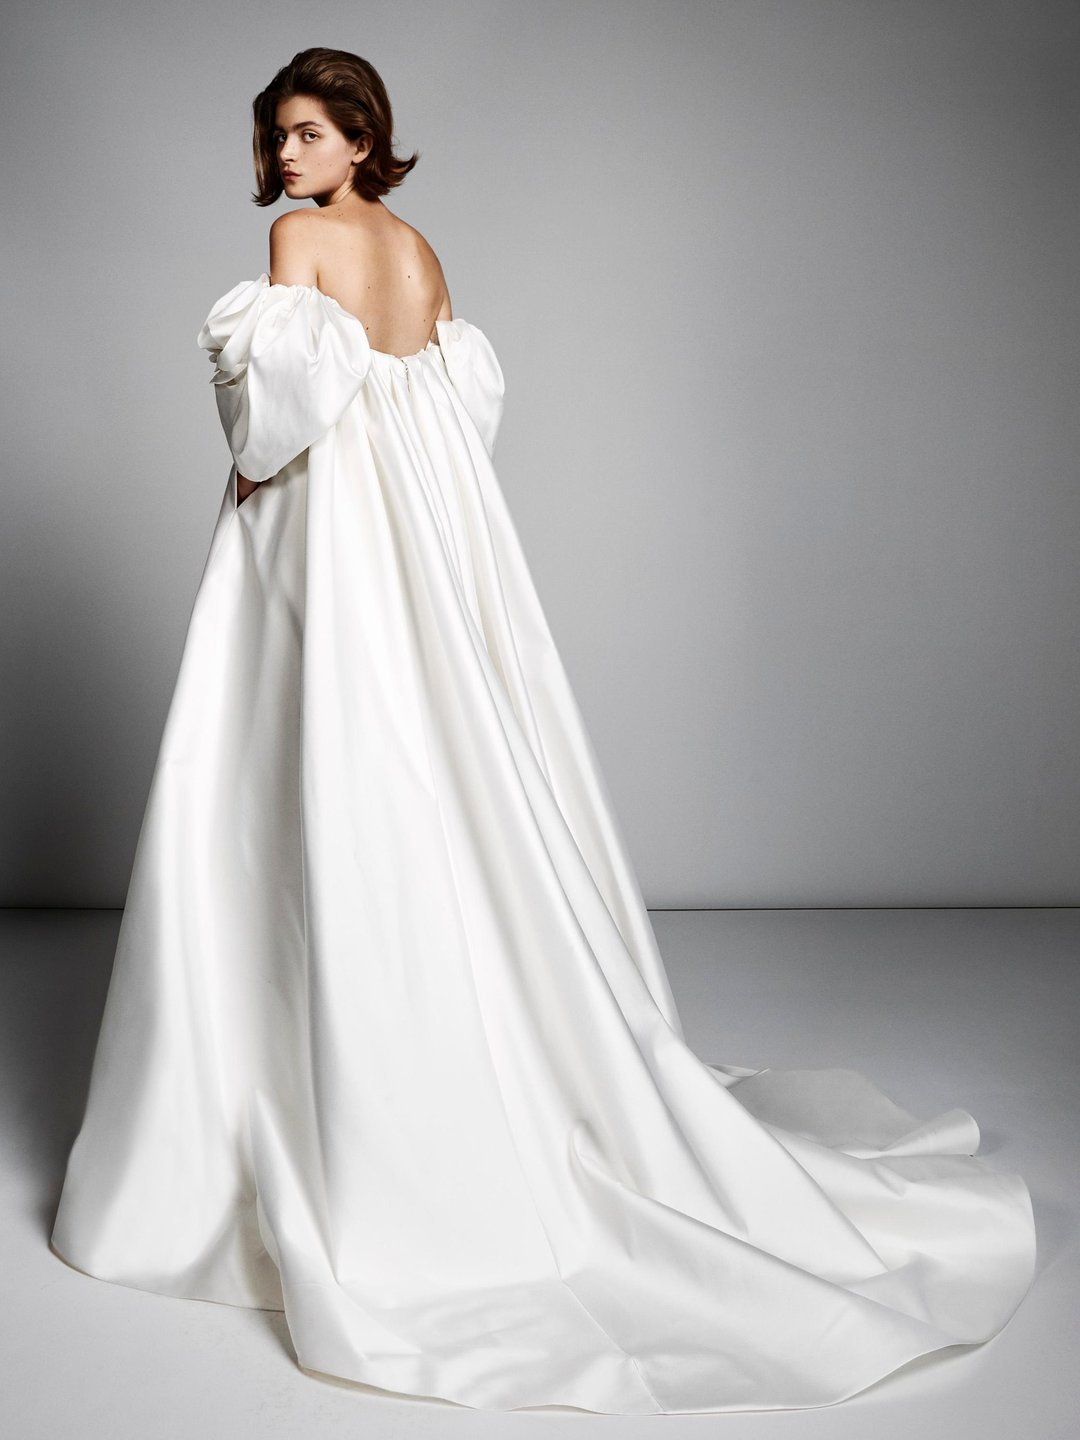 rose sleeve empire gown  dress photo